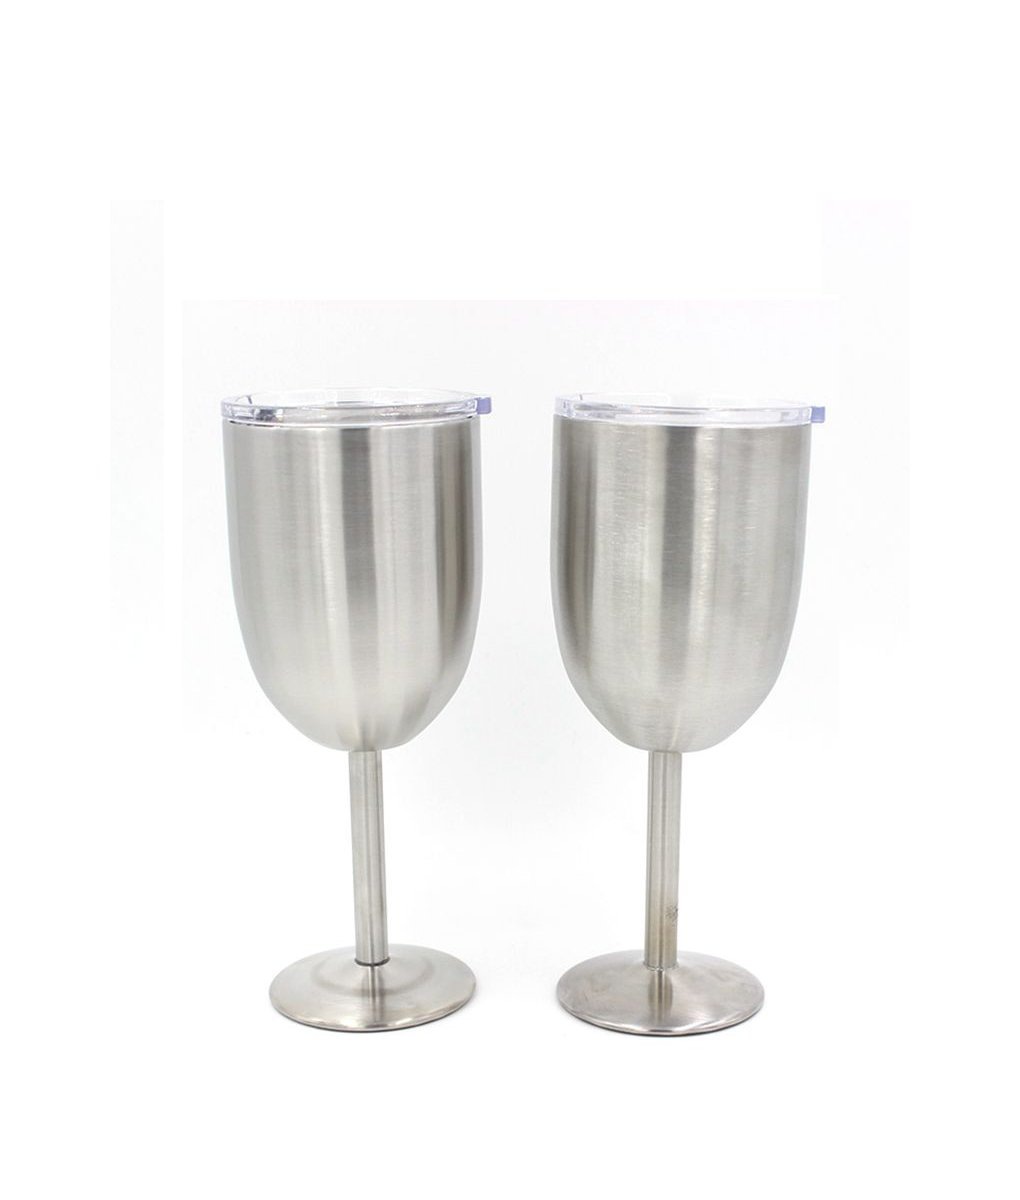 fee7ed9f4d6 Drink Up Insulated Wine Cups-Mexten Product is of very high quality